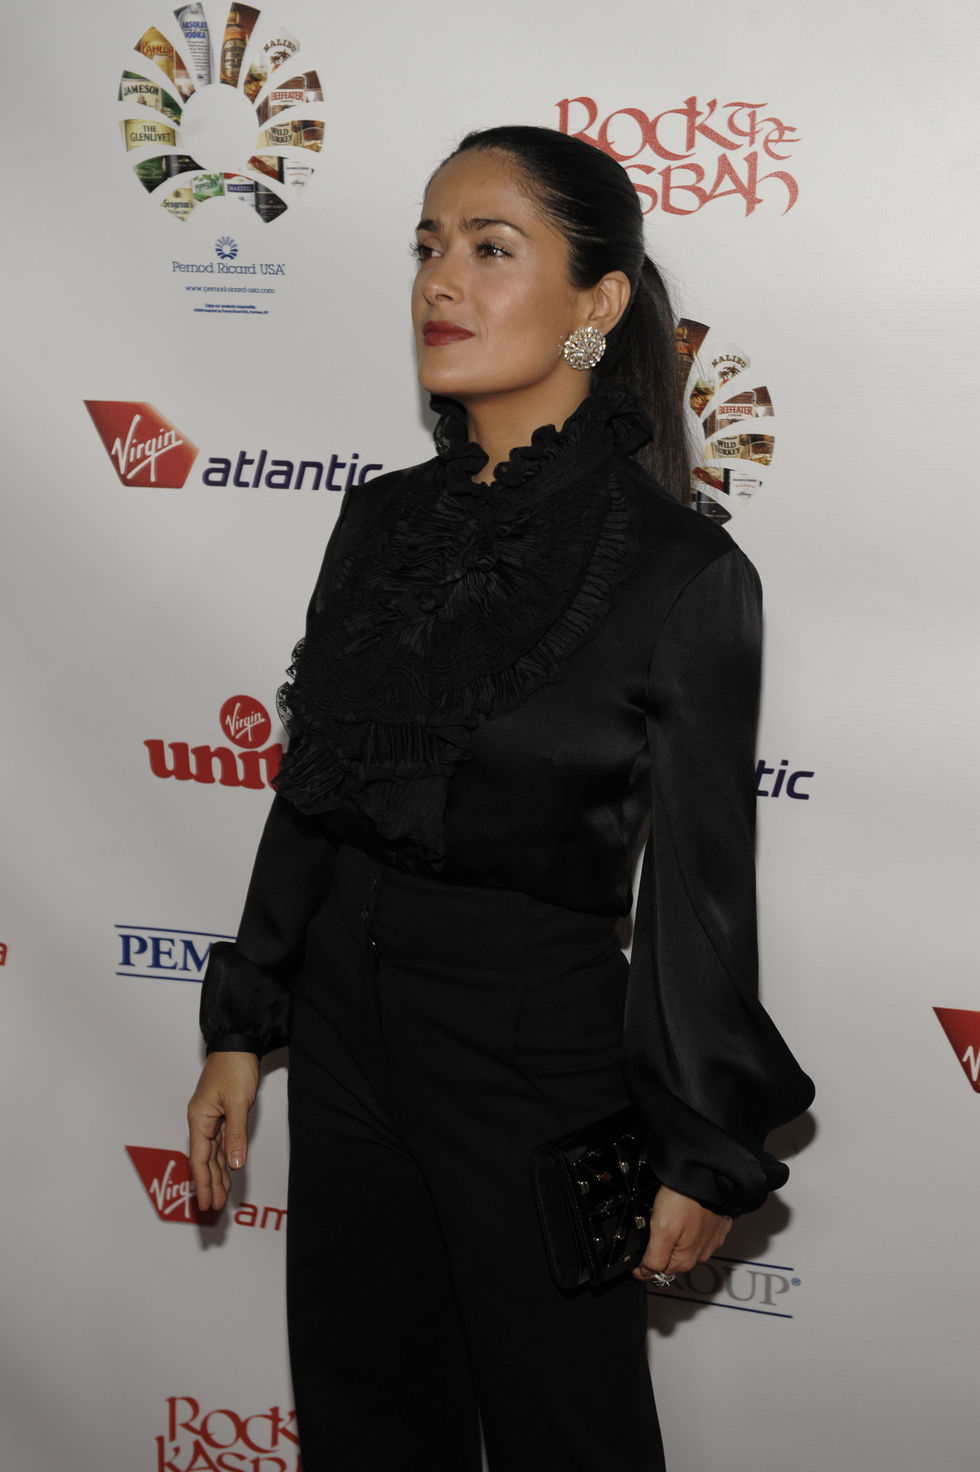 salma-hayek-virgin-unite-rock-the-kasbah-gala-in-los-angeles-01